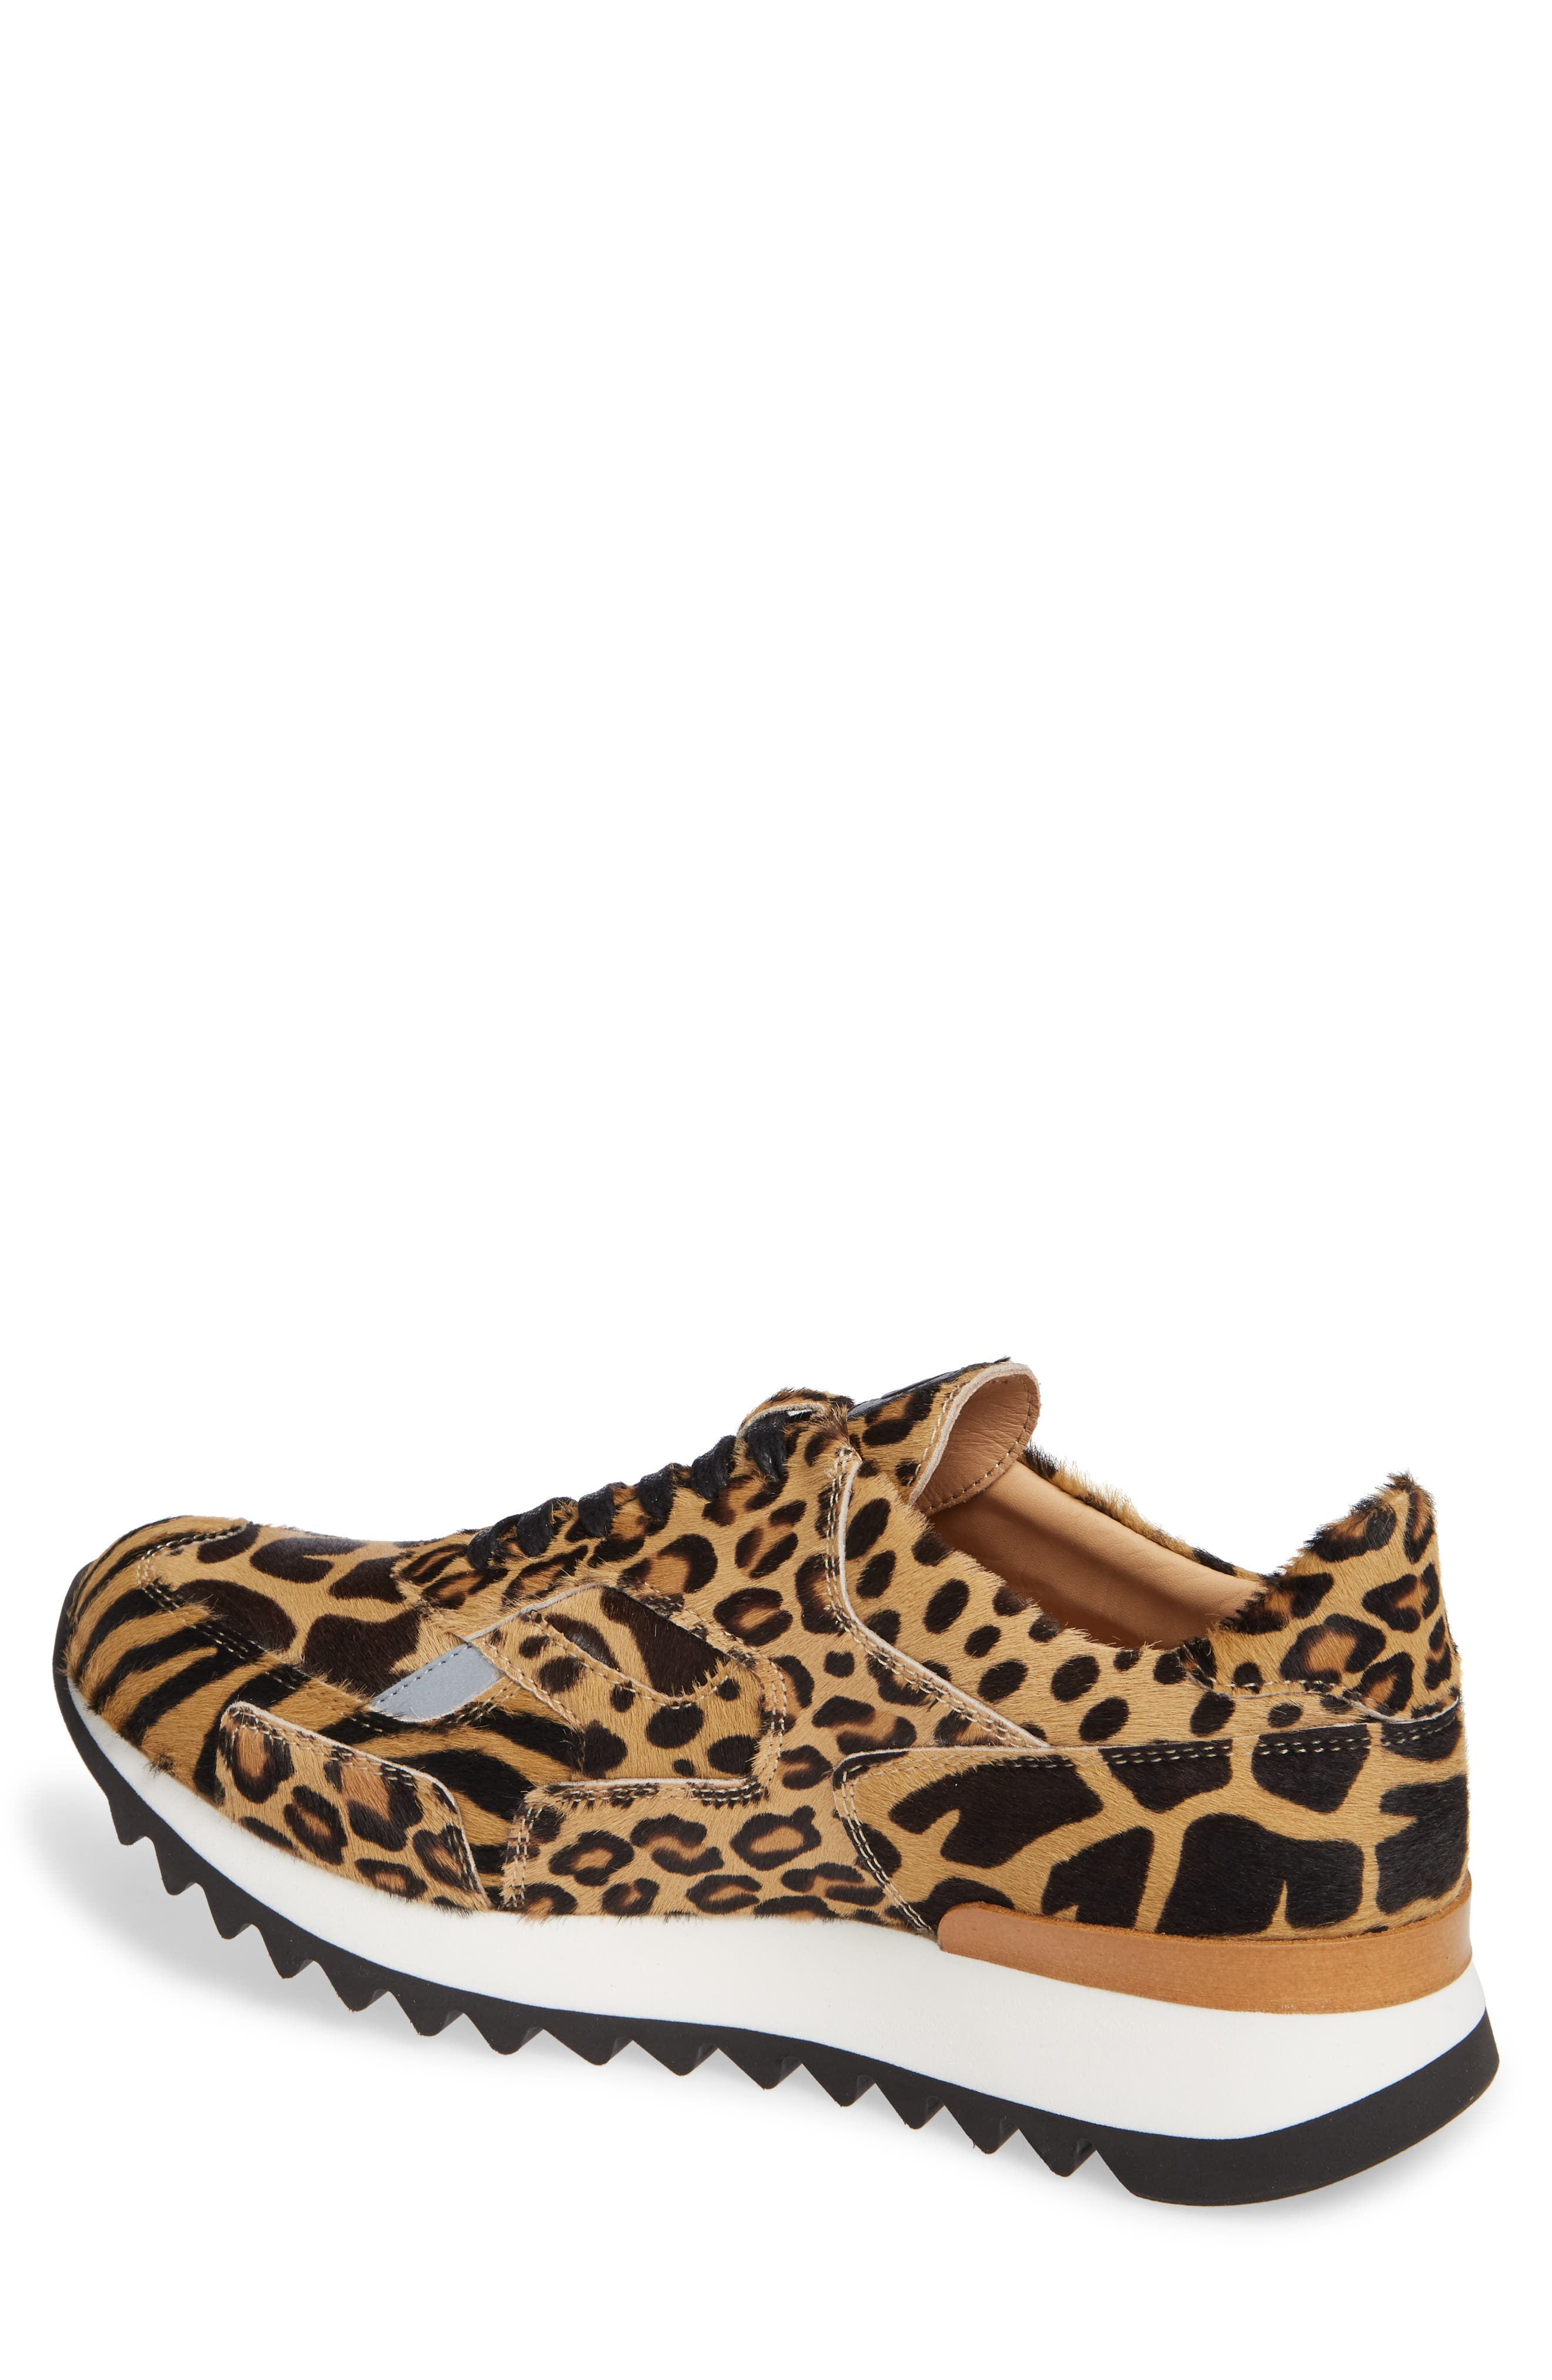 Nick Wooster x GREATS Pronto Genuine Calf Hair Sneaker,                             Alternate thumbnail 2, color,                             209